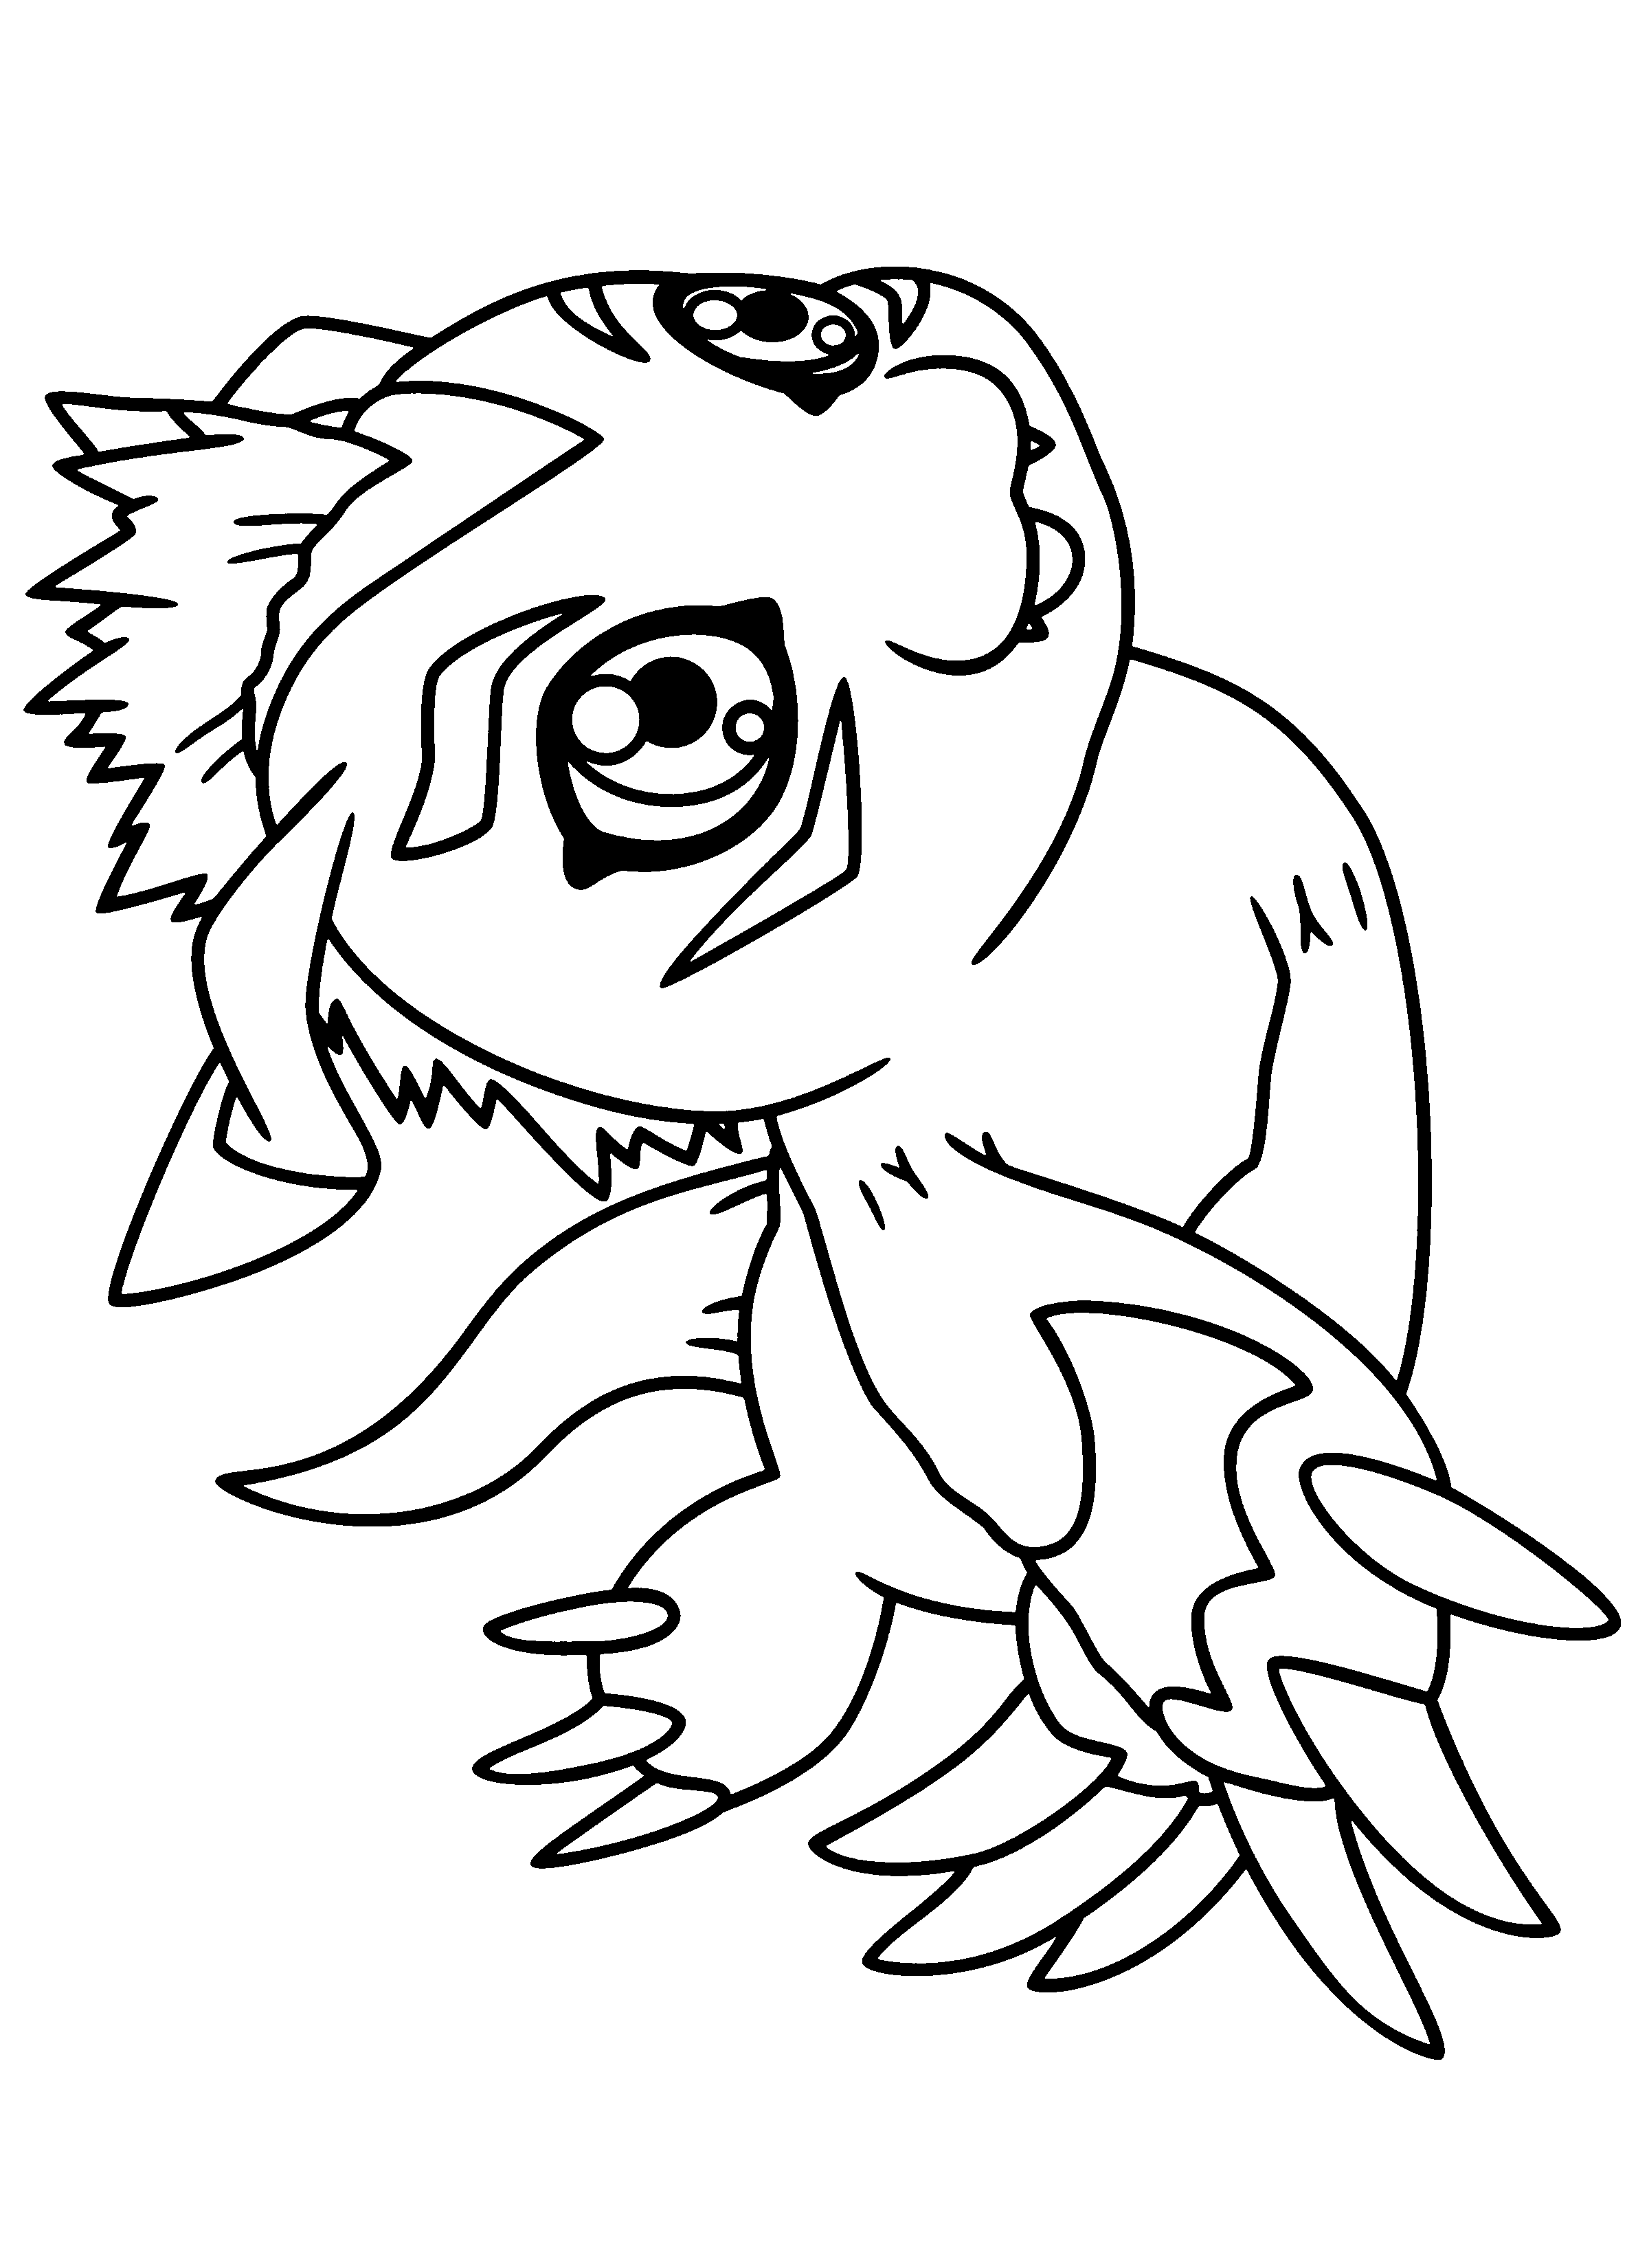 coloring digimon digimon coloring pages download and print digimon coloring digimon